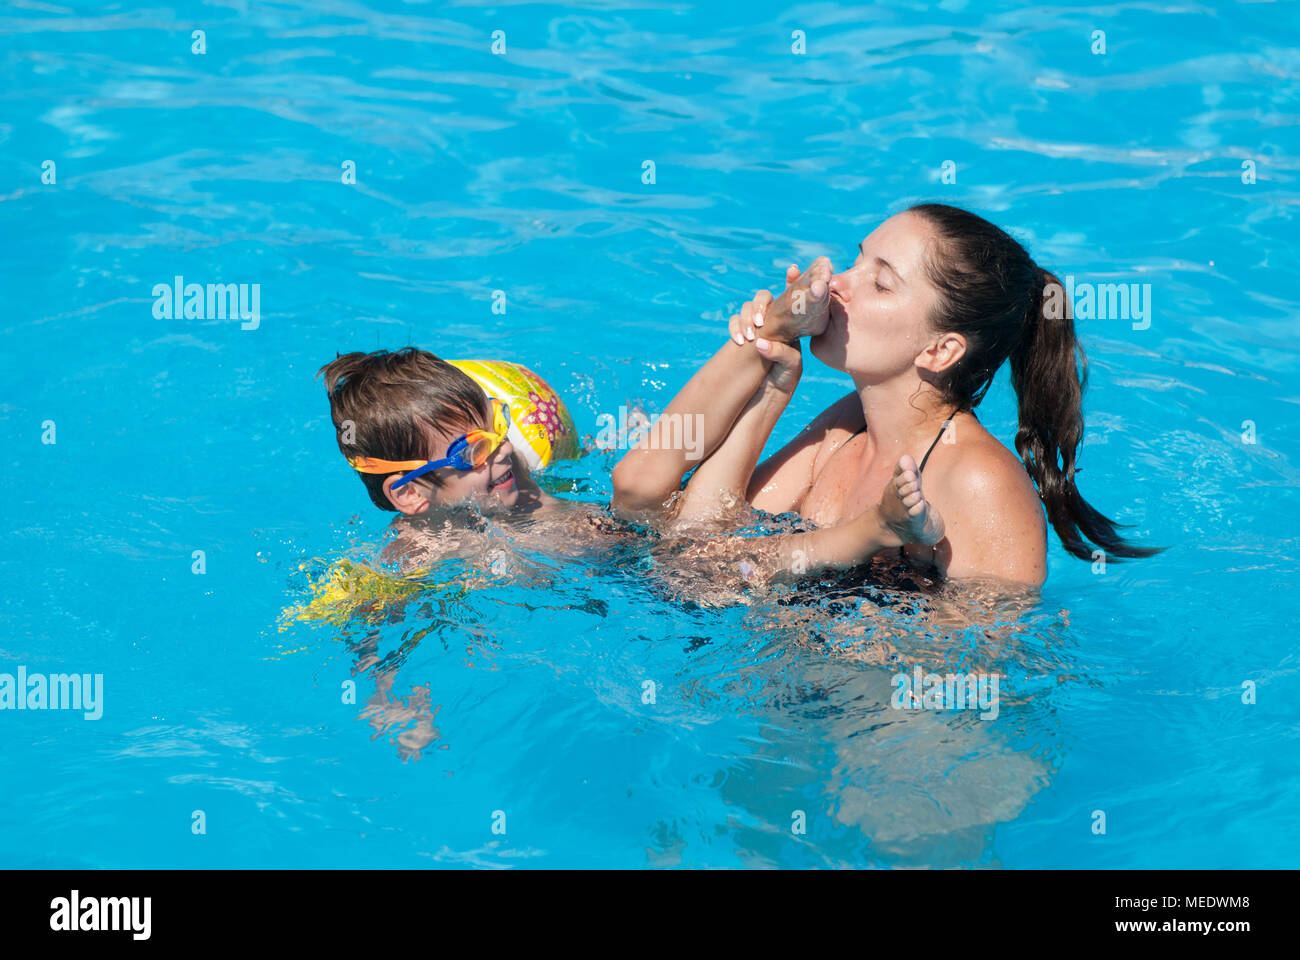 mother kisses foot of child swimming in blue pool on summer vacation Stock Photo